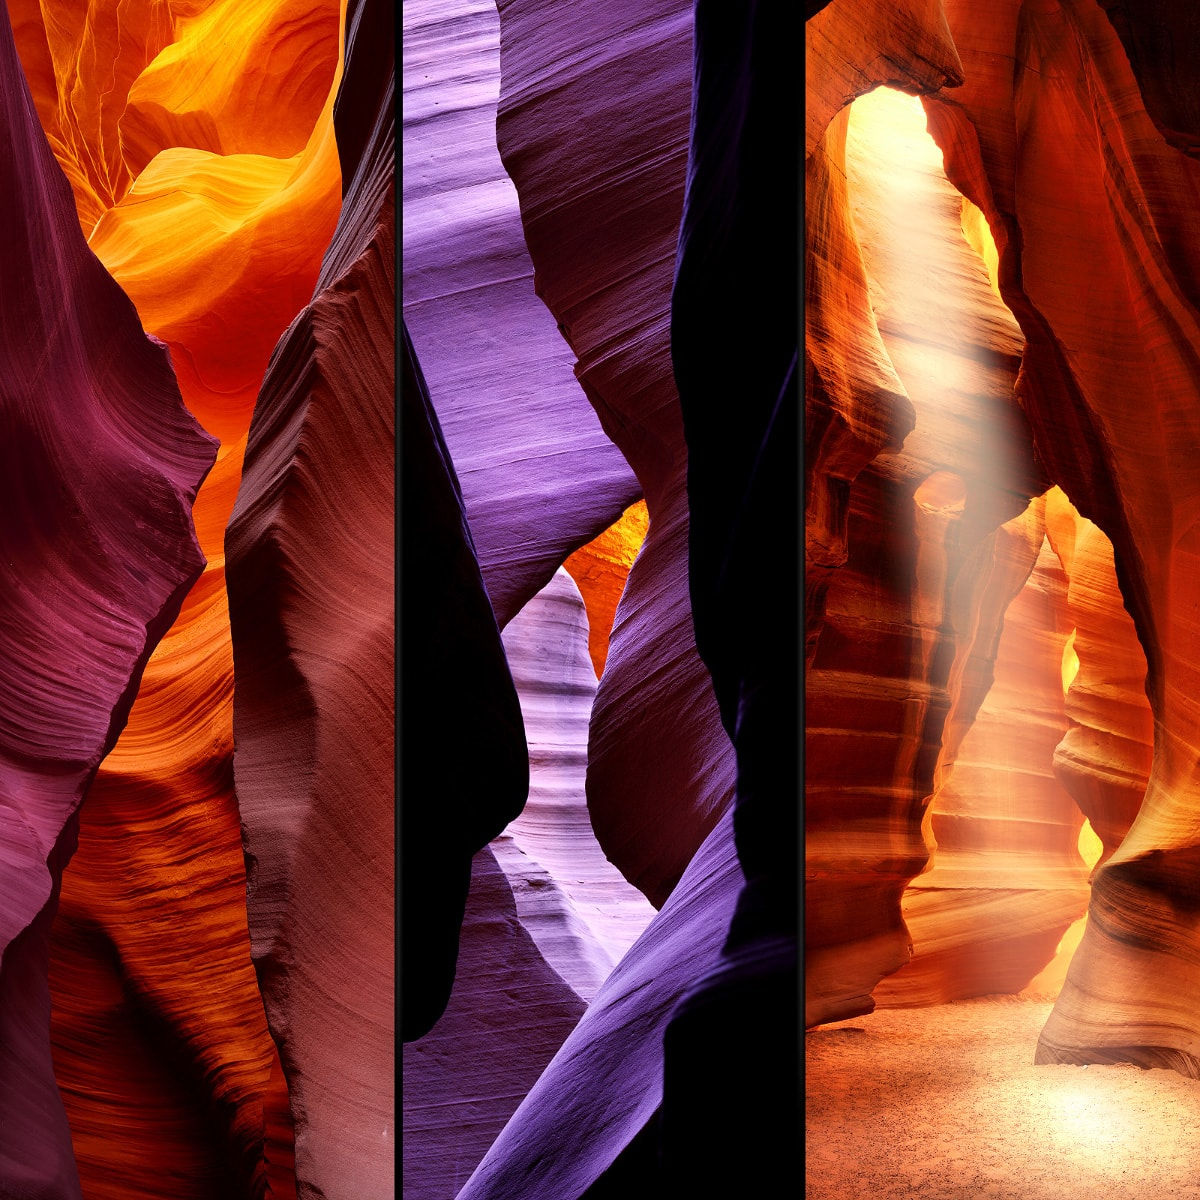 Large Format Prints, Panoramic Photos, Nature Landscape Photography, Vertical Photography Gallery